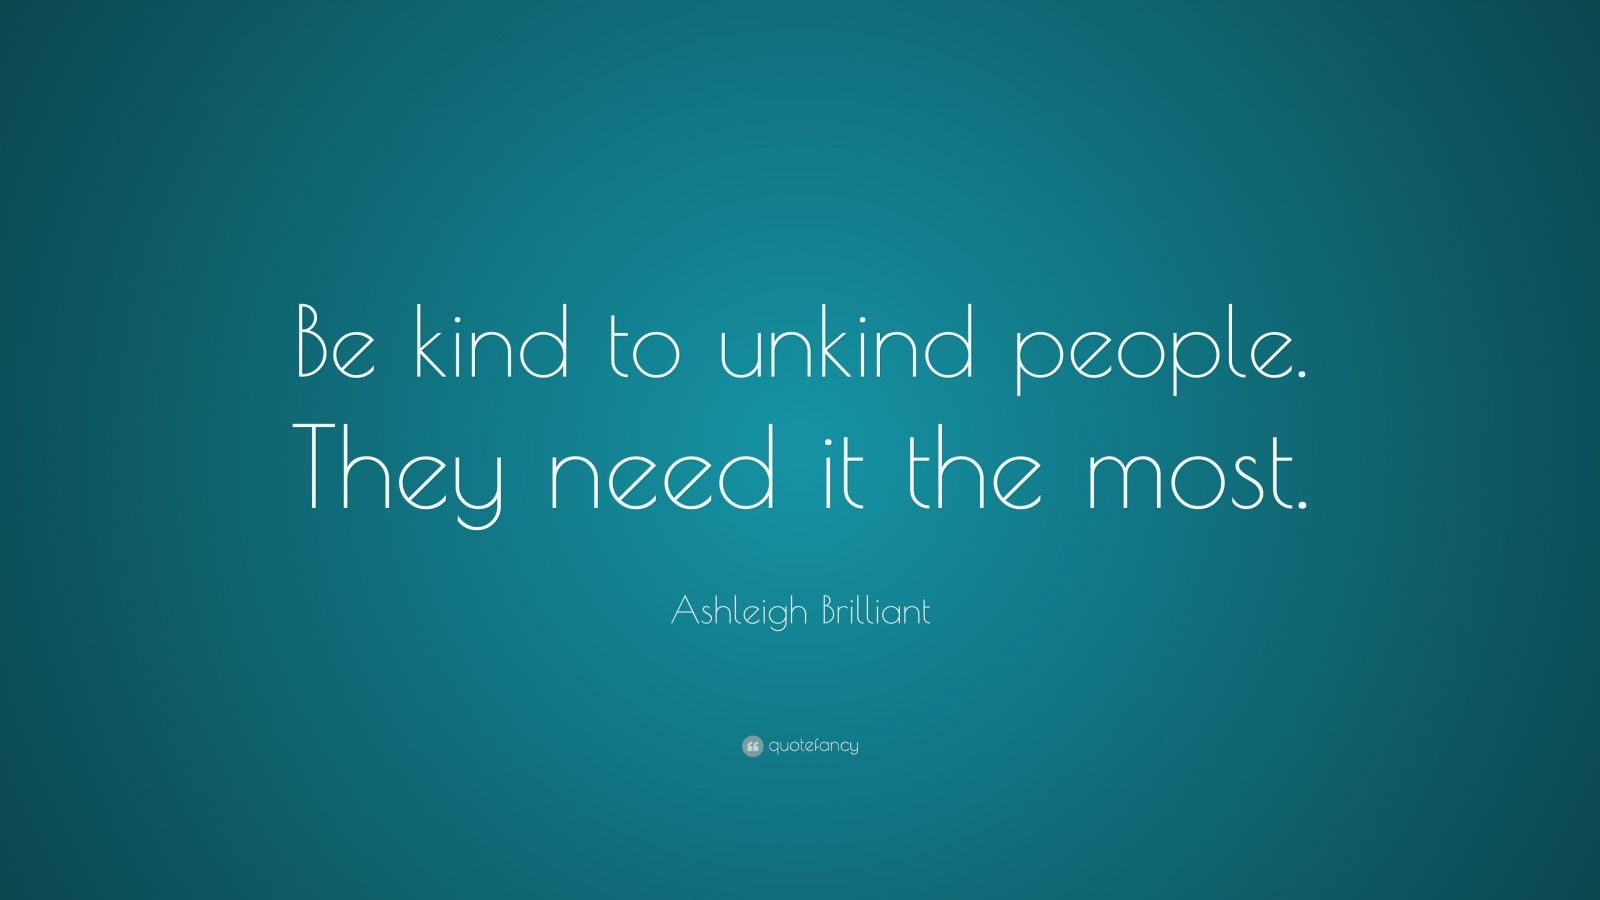 Sarcastic Wallpaper Quotes Ashleigh Brilliant Quote Be Kind To Unkind People They